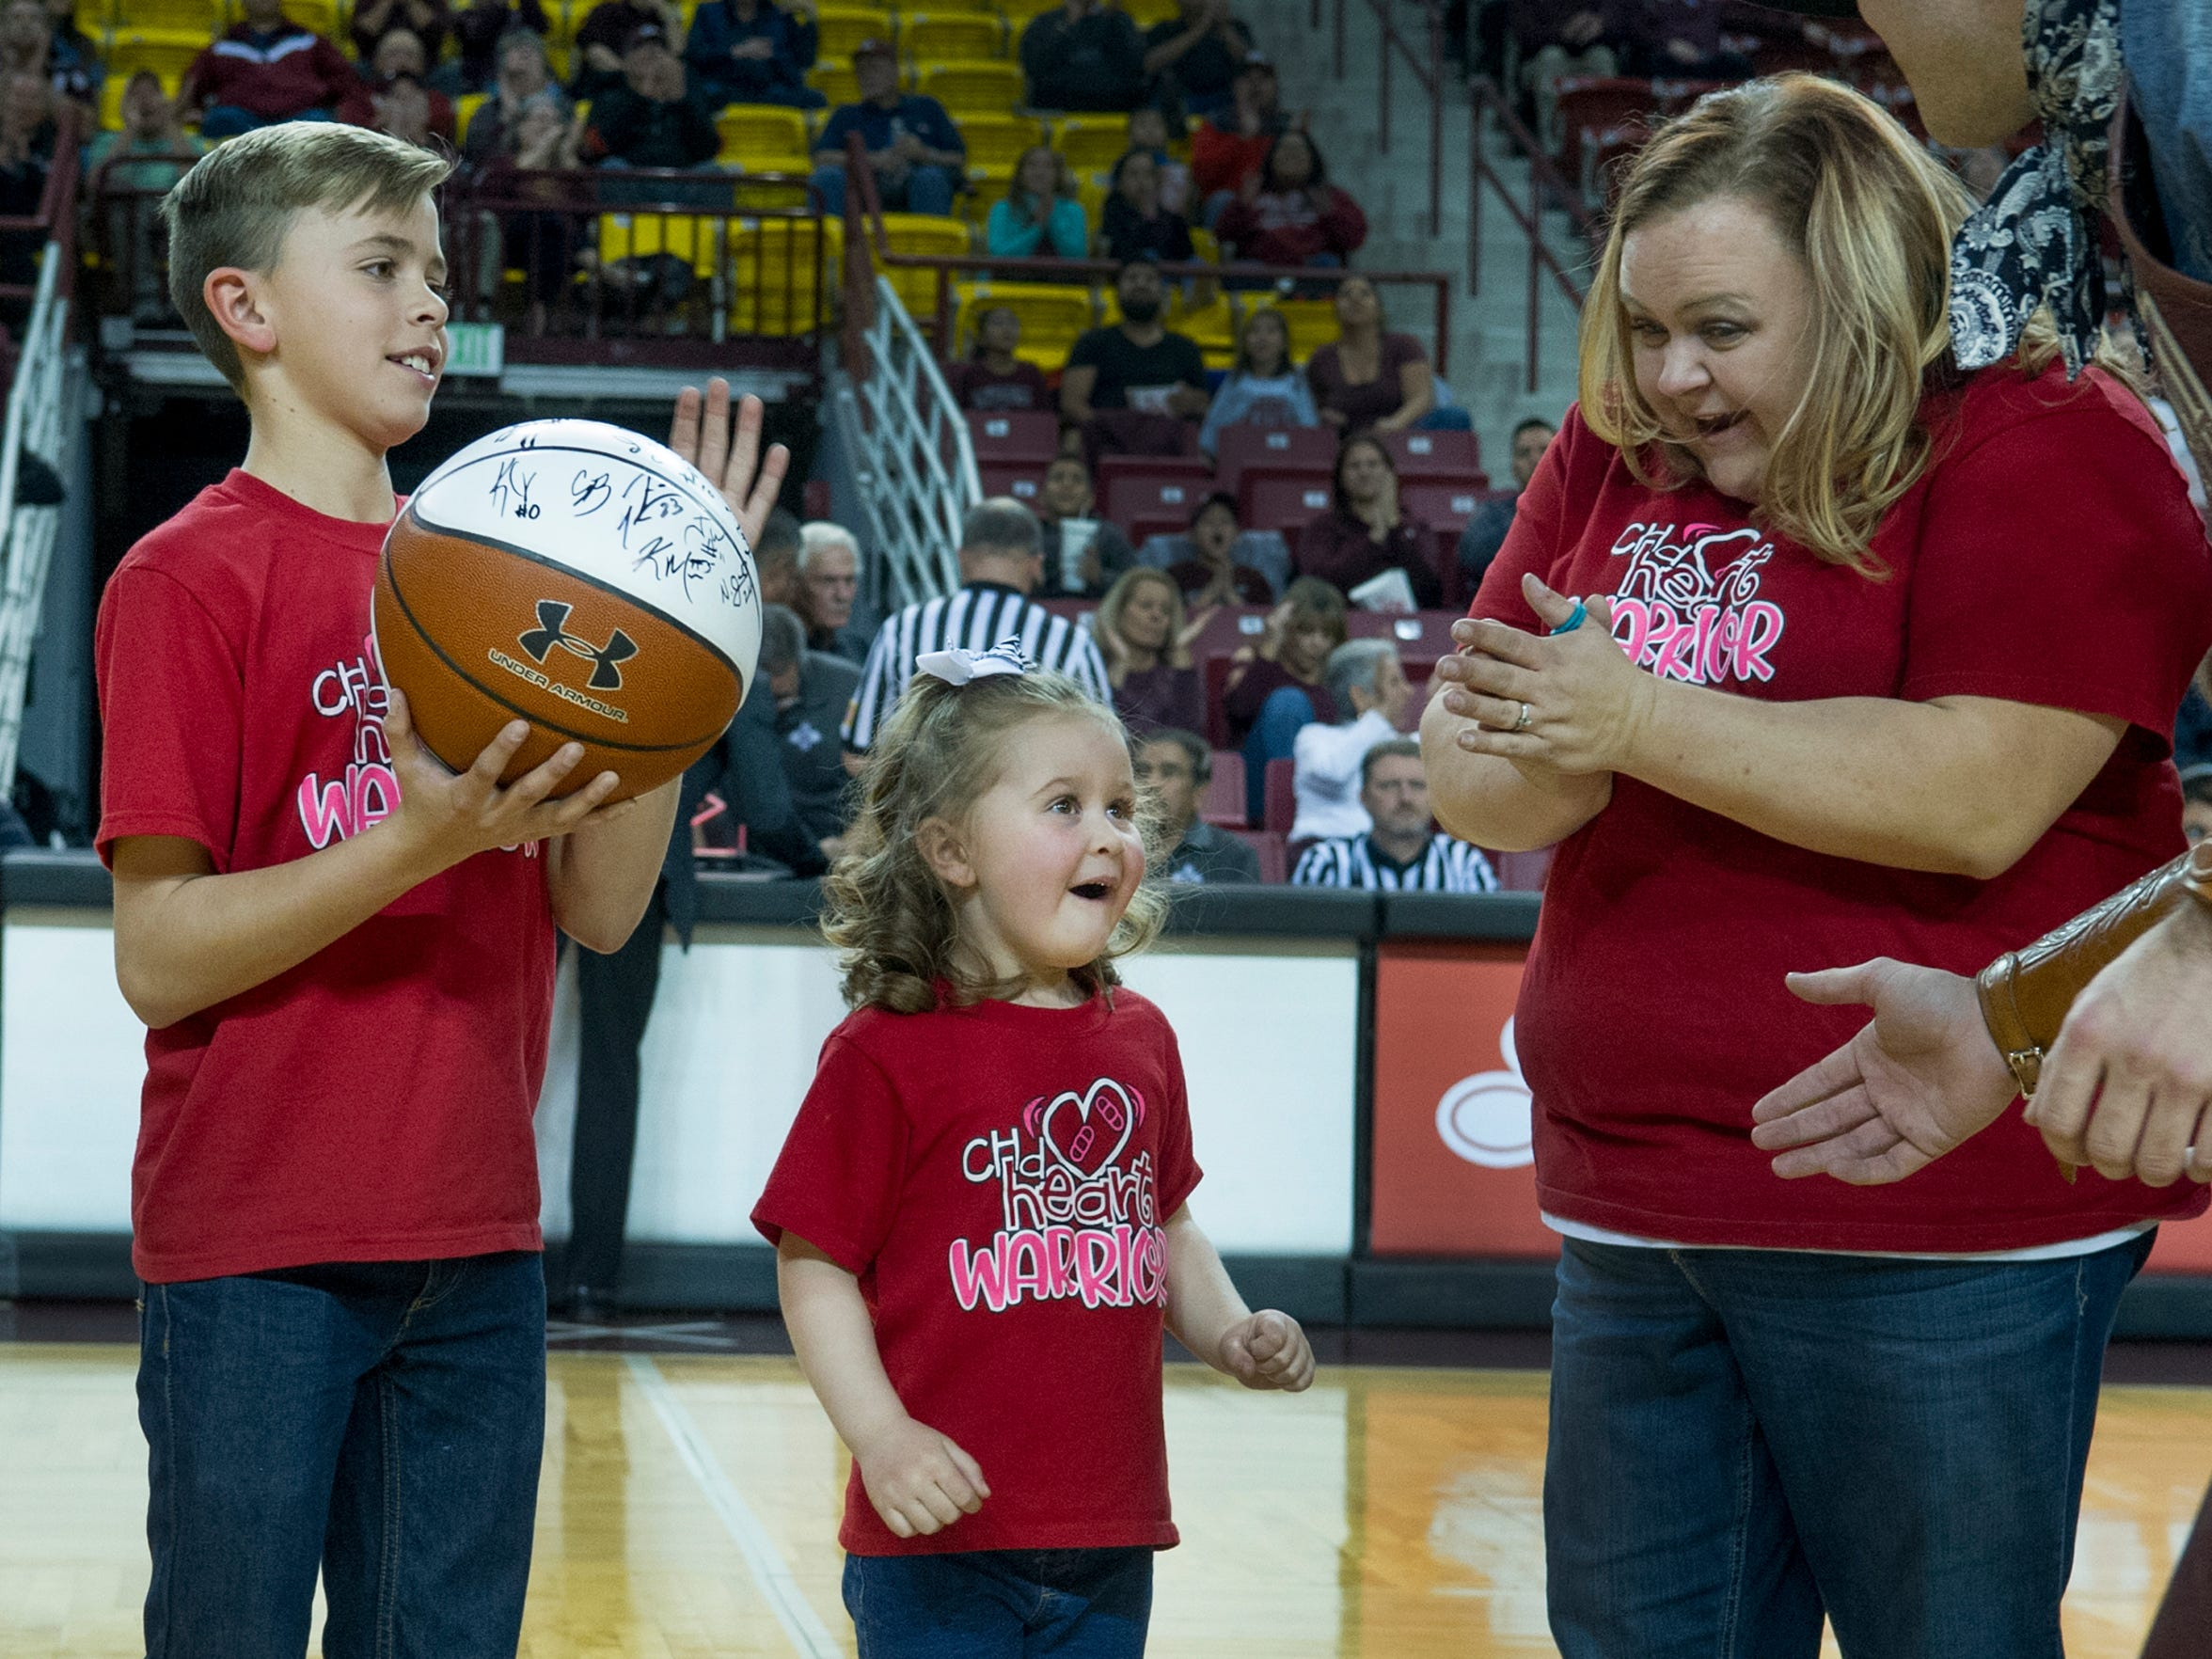 Ashley Maki, right, claps for her daughter, Kayla Maki, 5, on Tuesday, Jan. 30, 2018, at the Pan American Center in Las Cruces. Kayla, who has a serious heart condition, just learned a wish submitted to Make-a-Wish New Mexico will be granted. Her older brother, Ethan Maki, 13, looks on.